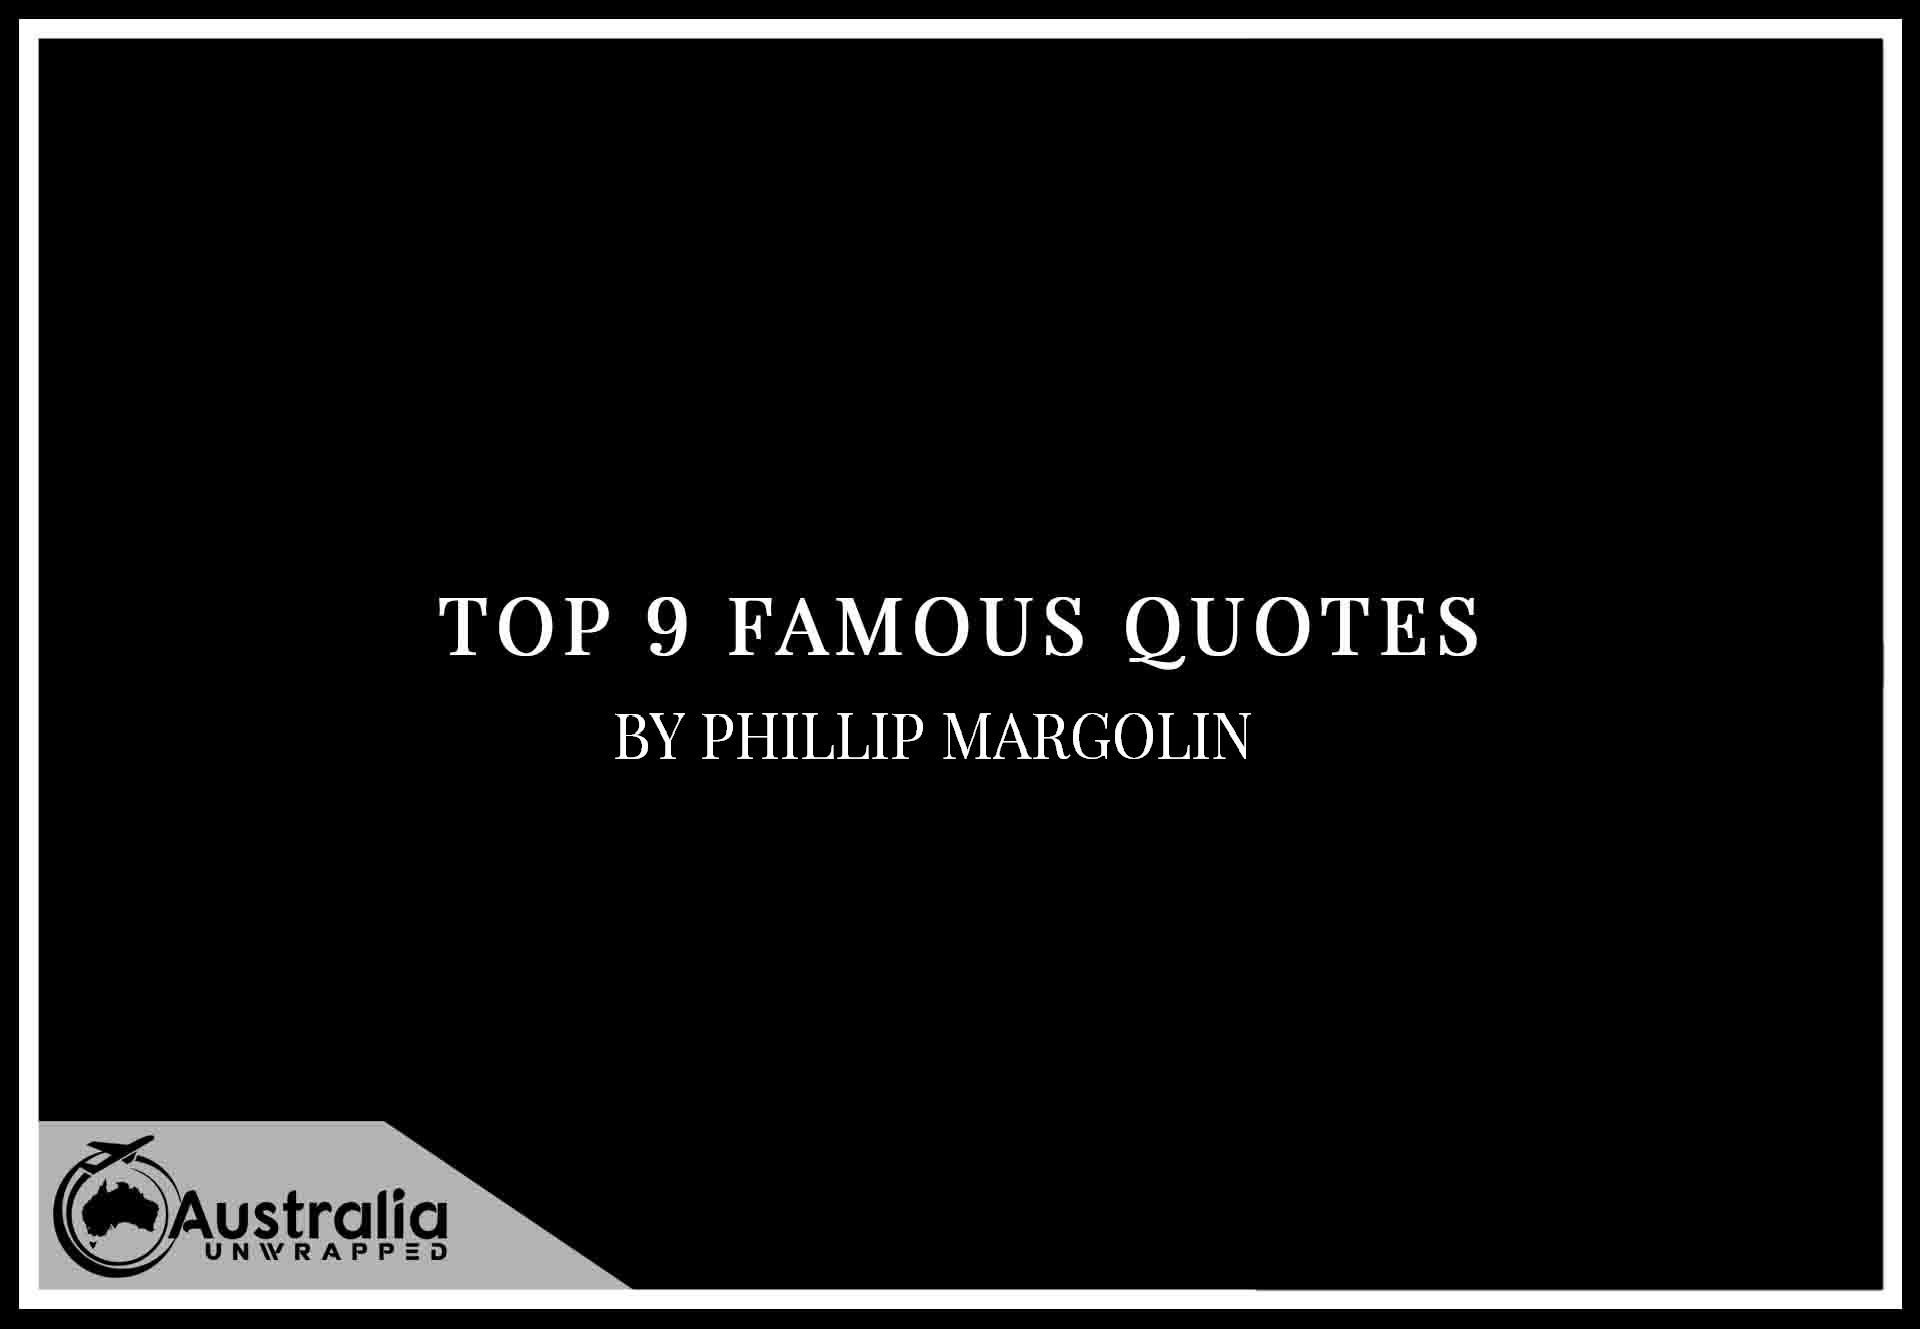 Top 9 Famous Quotes by Author Phillip Margolin